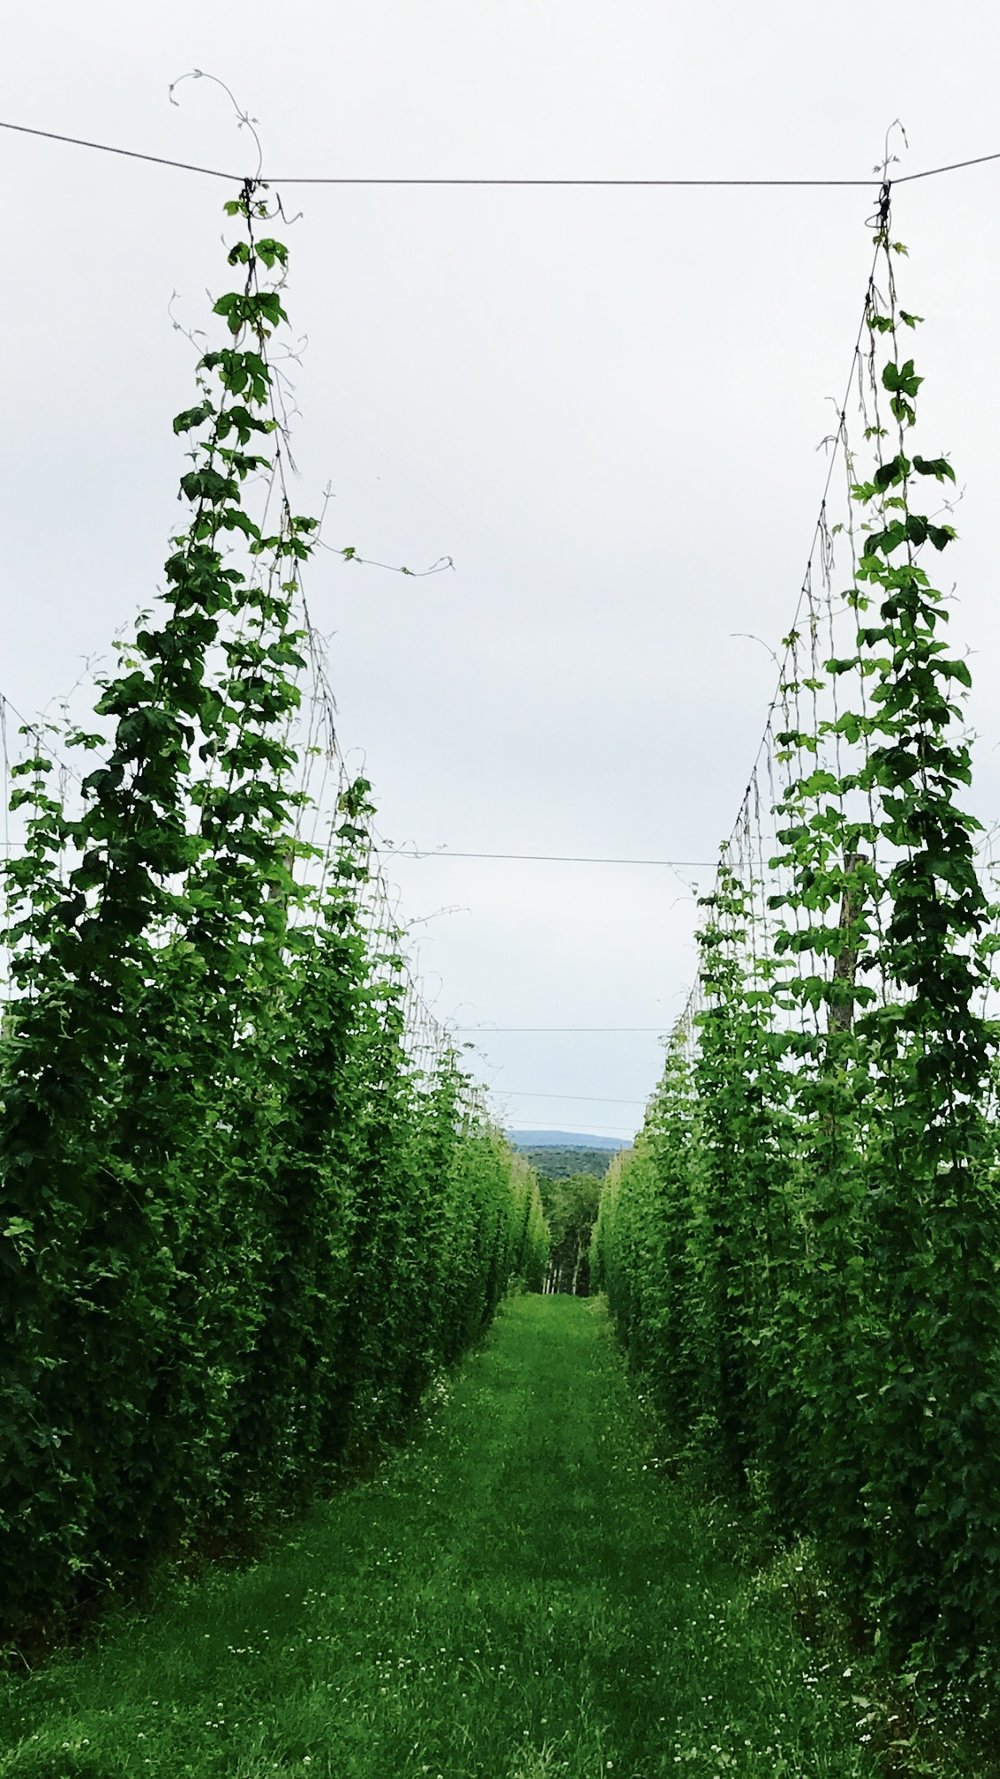 Newport hops - June 2017